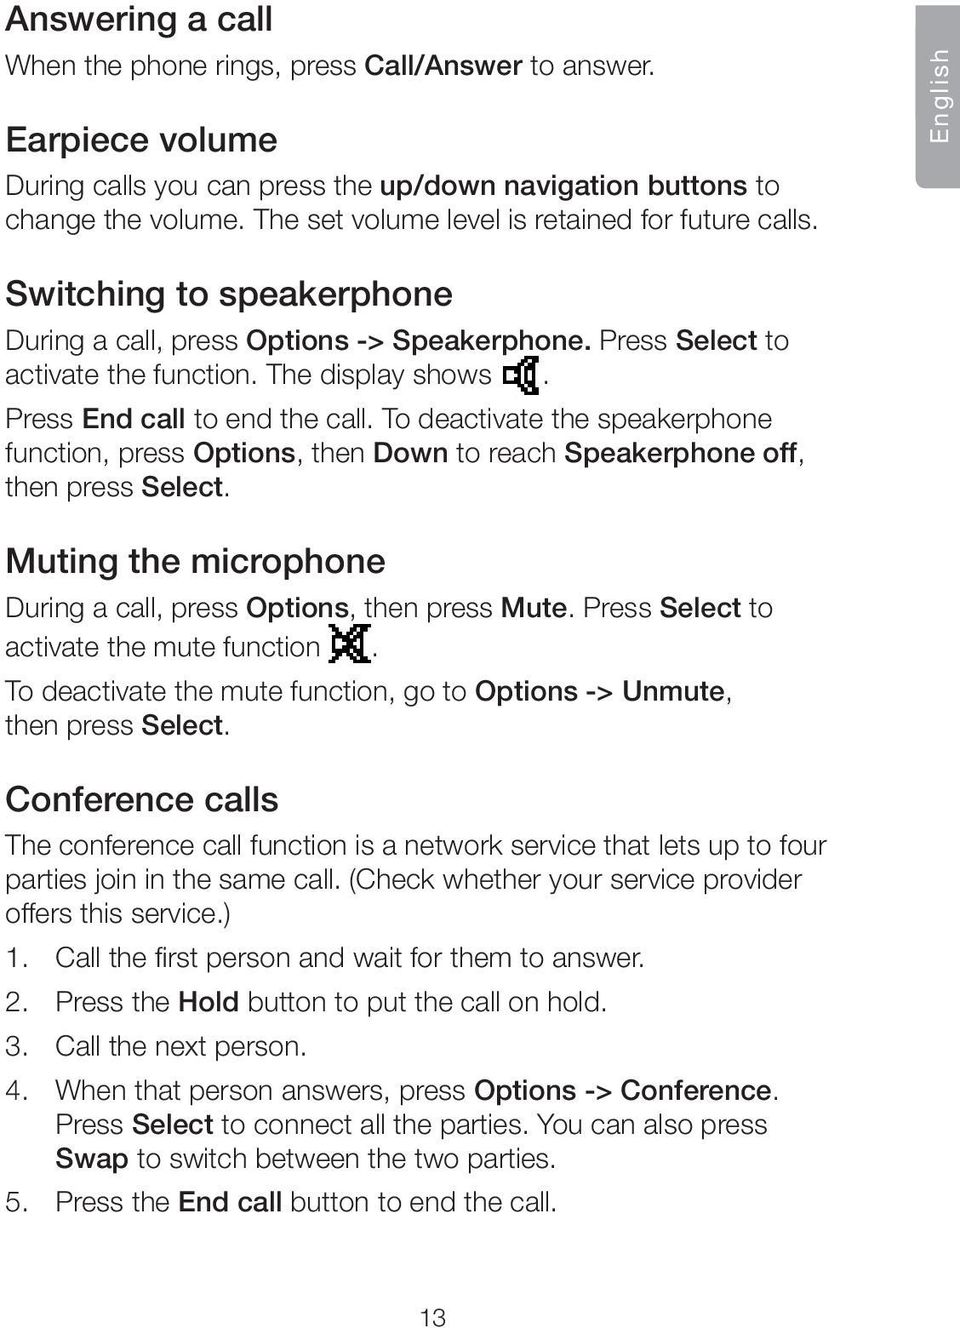 Press End call to end the call. To deactivate the speakerphone function, press Options, then Down to reach Speakerphone off, then press Select.